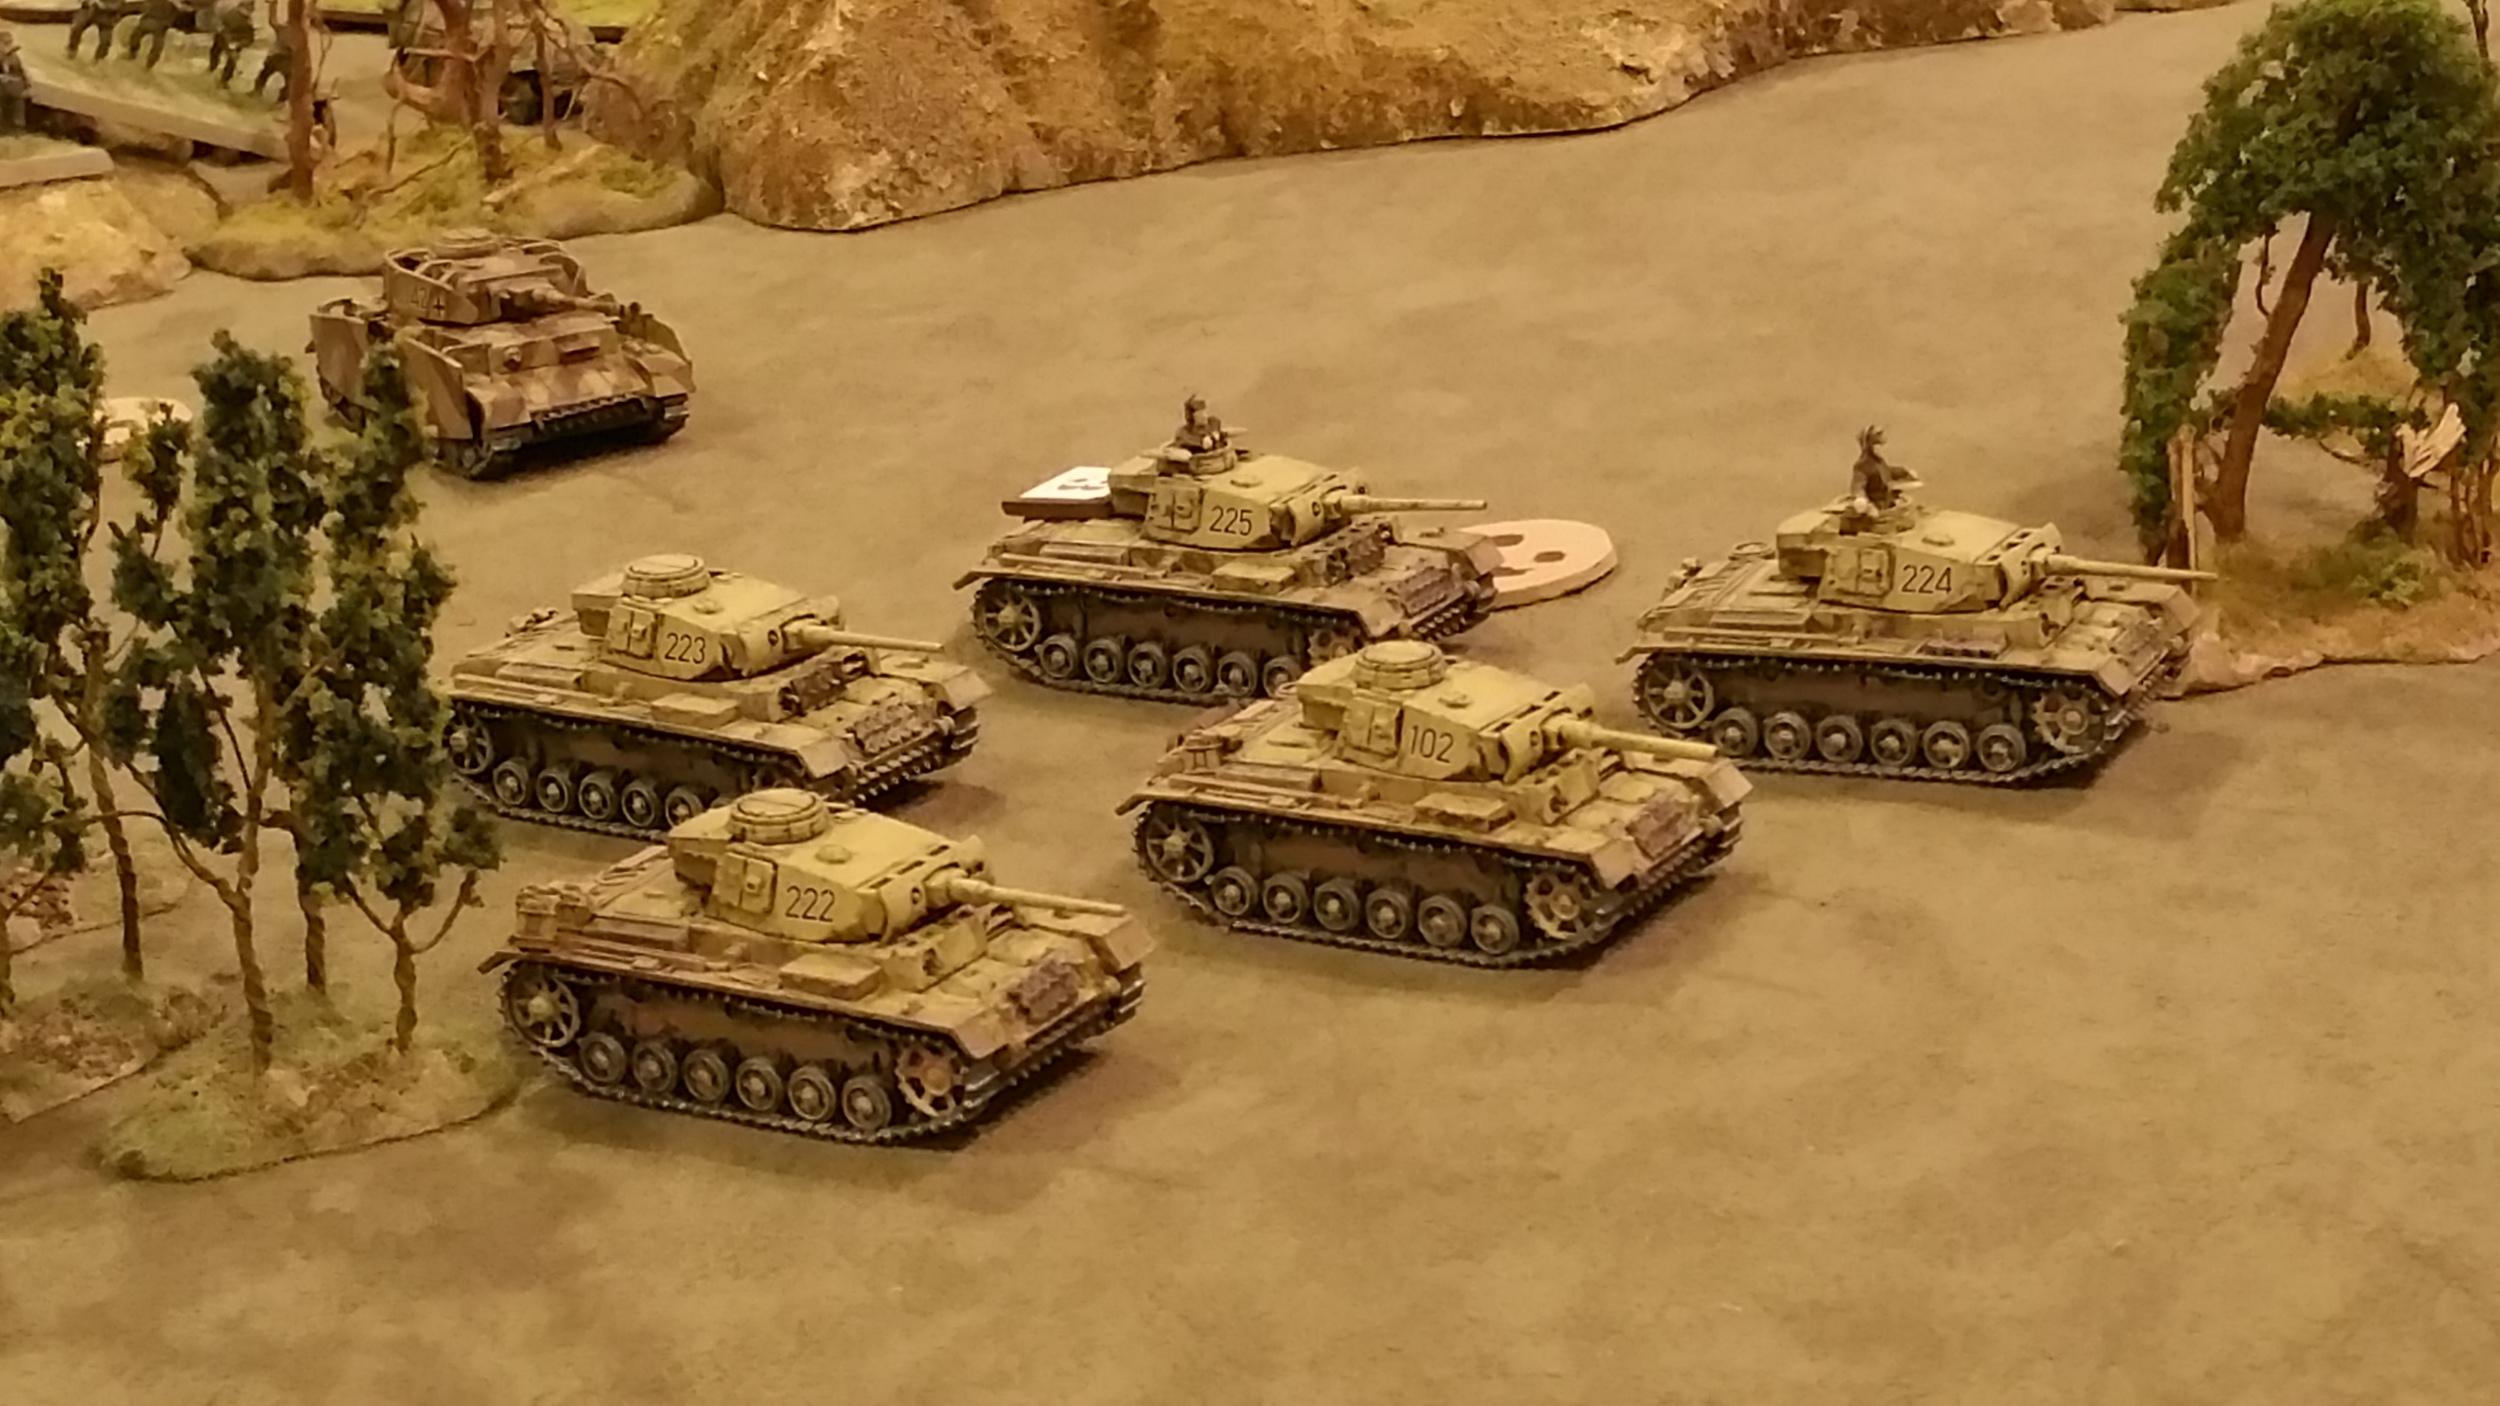 Panzers forward to the assault